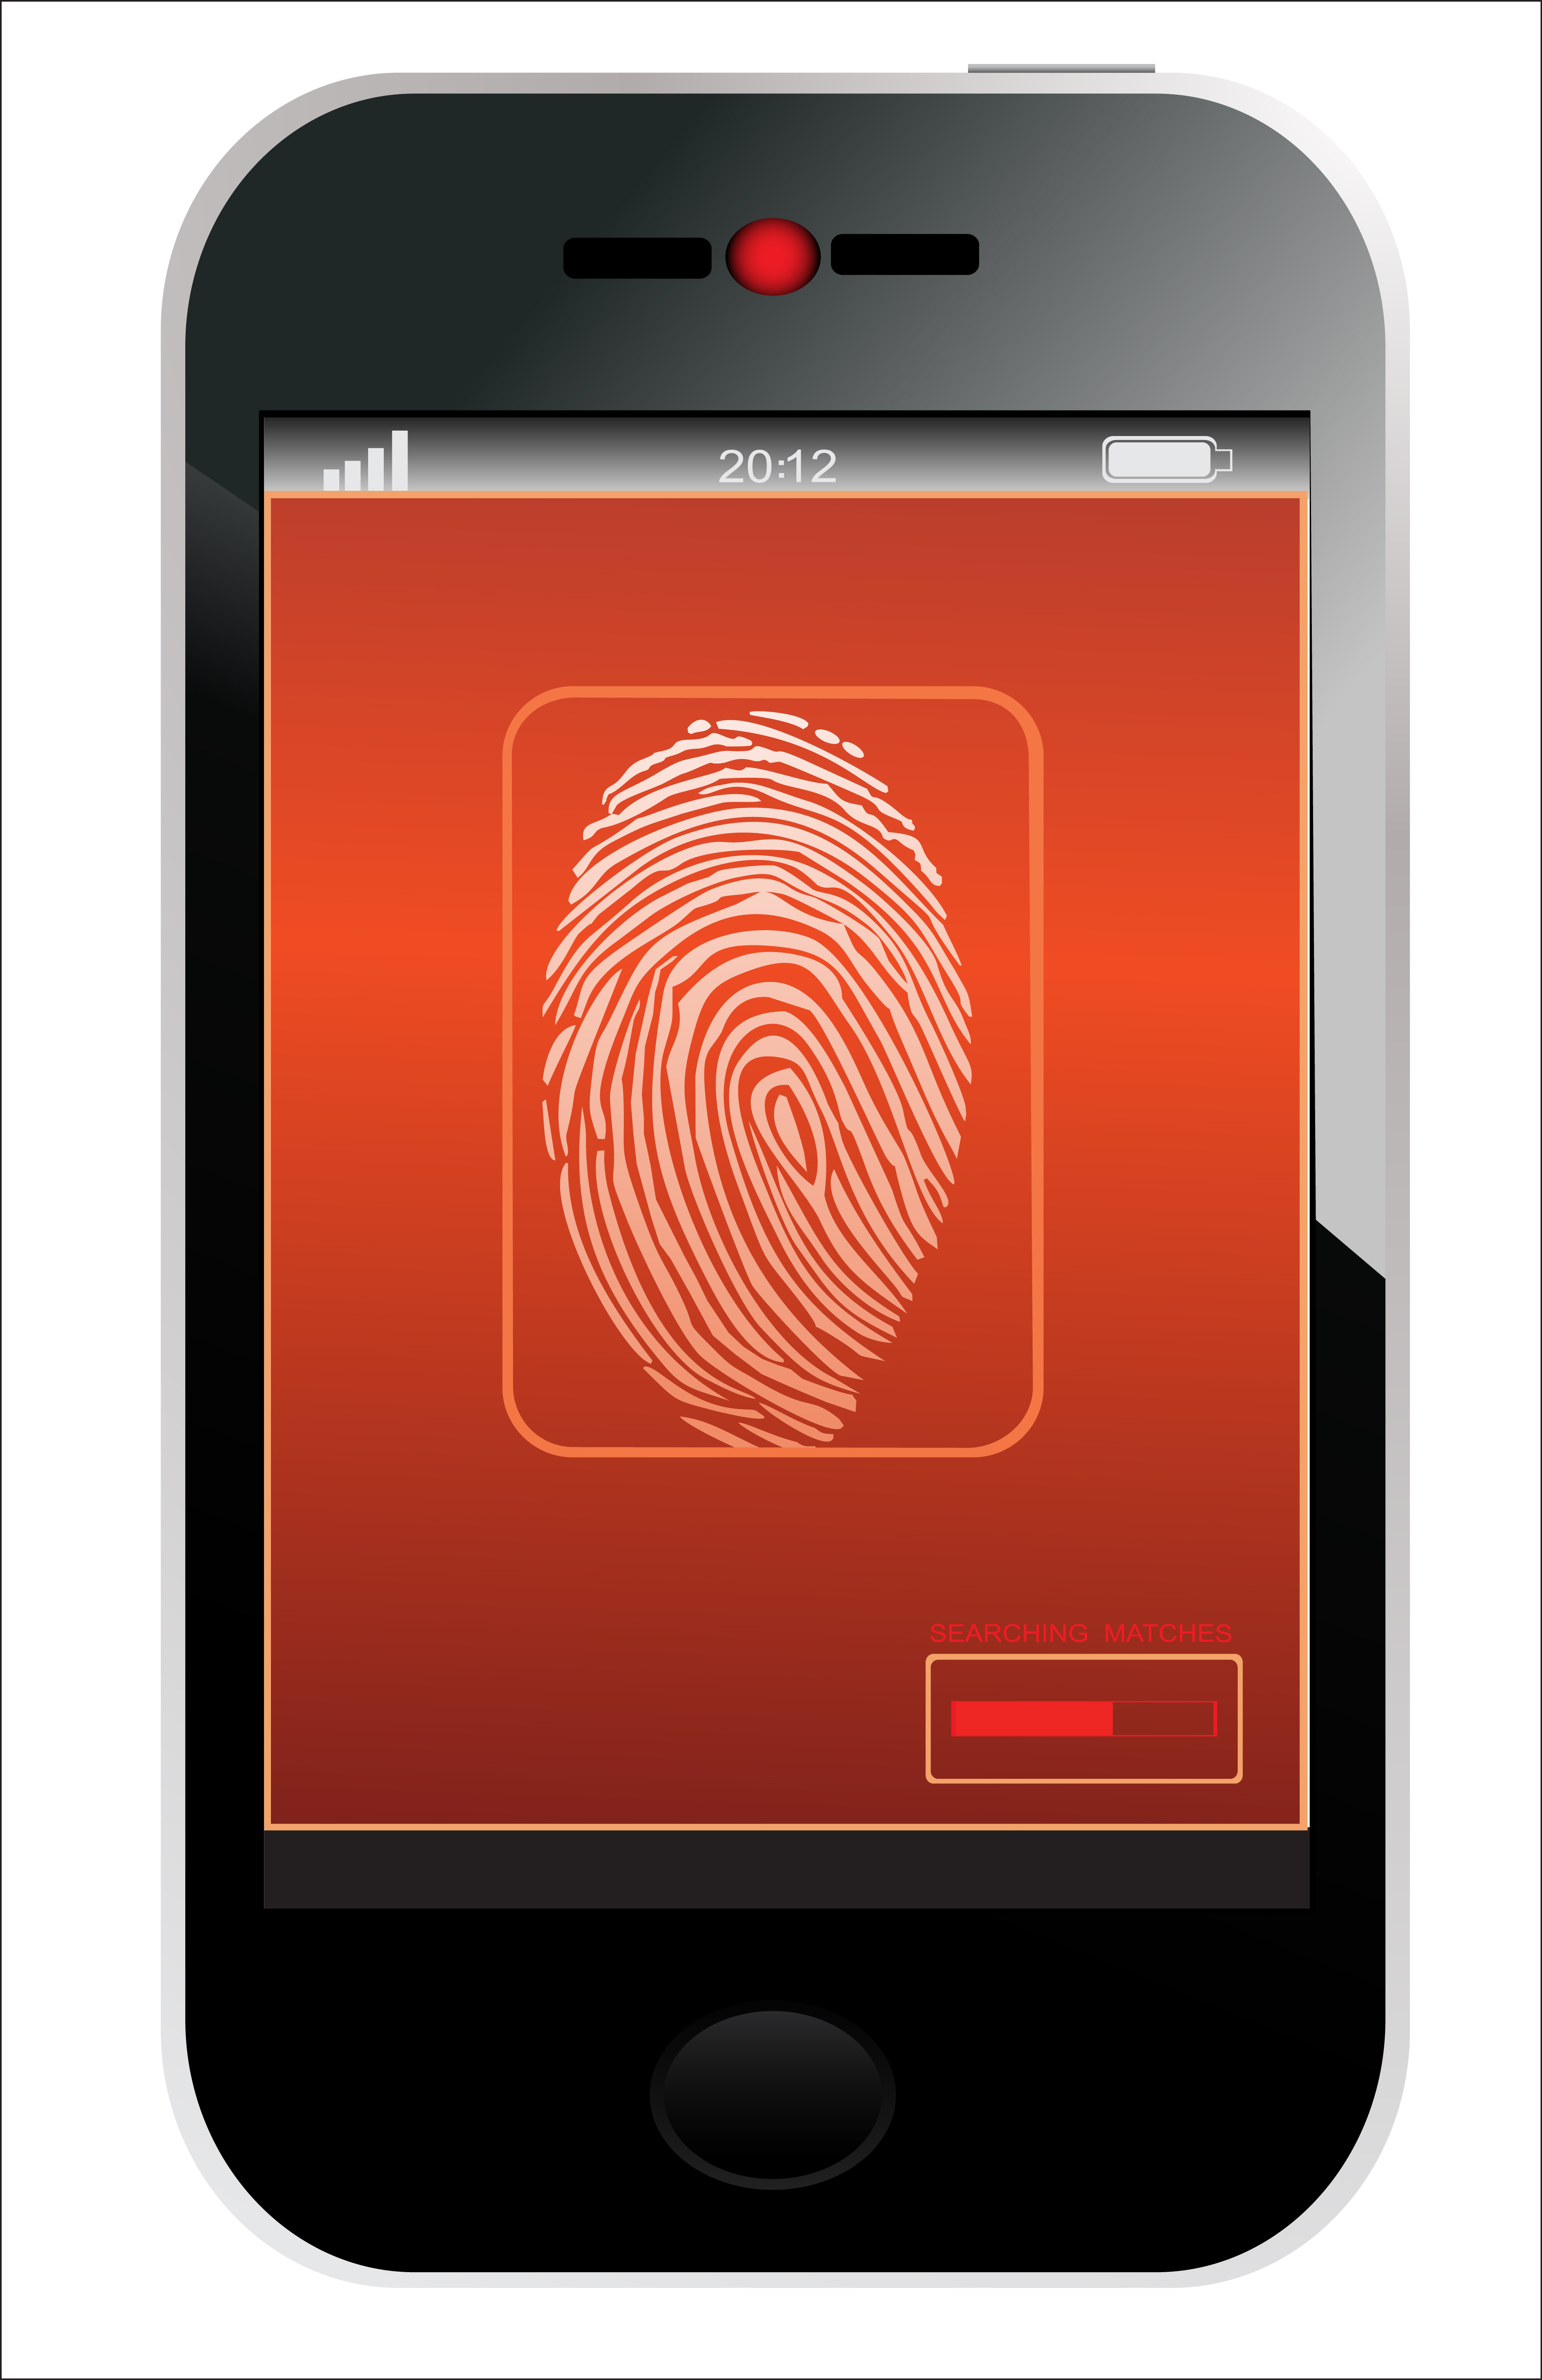 Impact of Recent Court Order Request to Unlock iPhone with